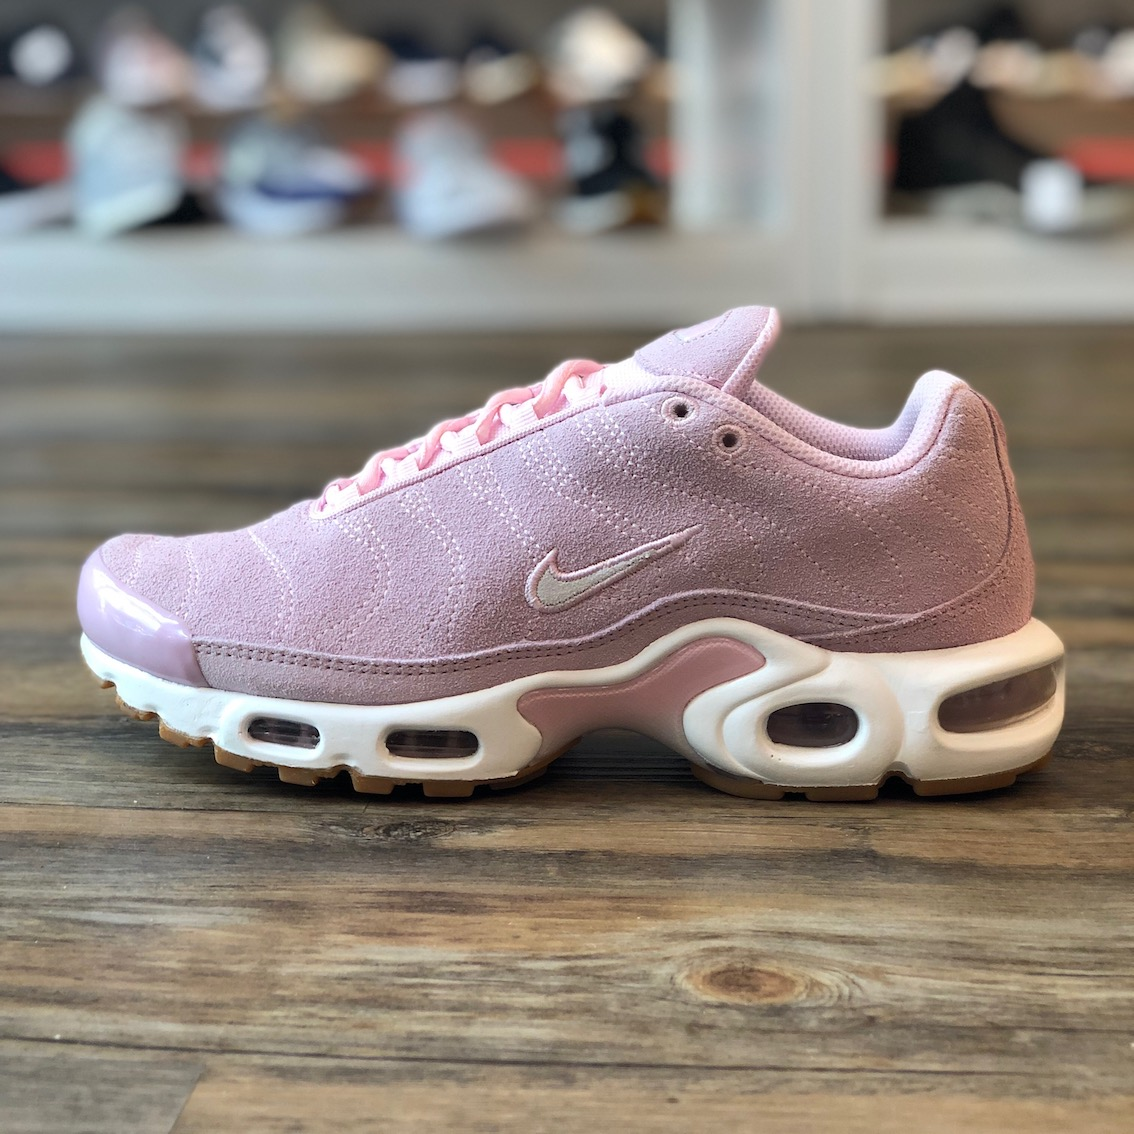 Details zu Nike Air Max Plus TN Gr.41 Sneaker Schuhe Running pink CD7060 600 Damen